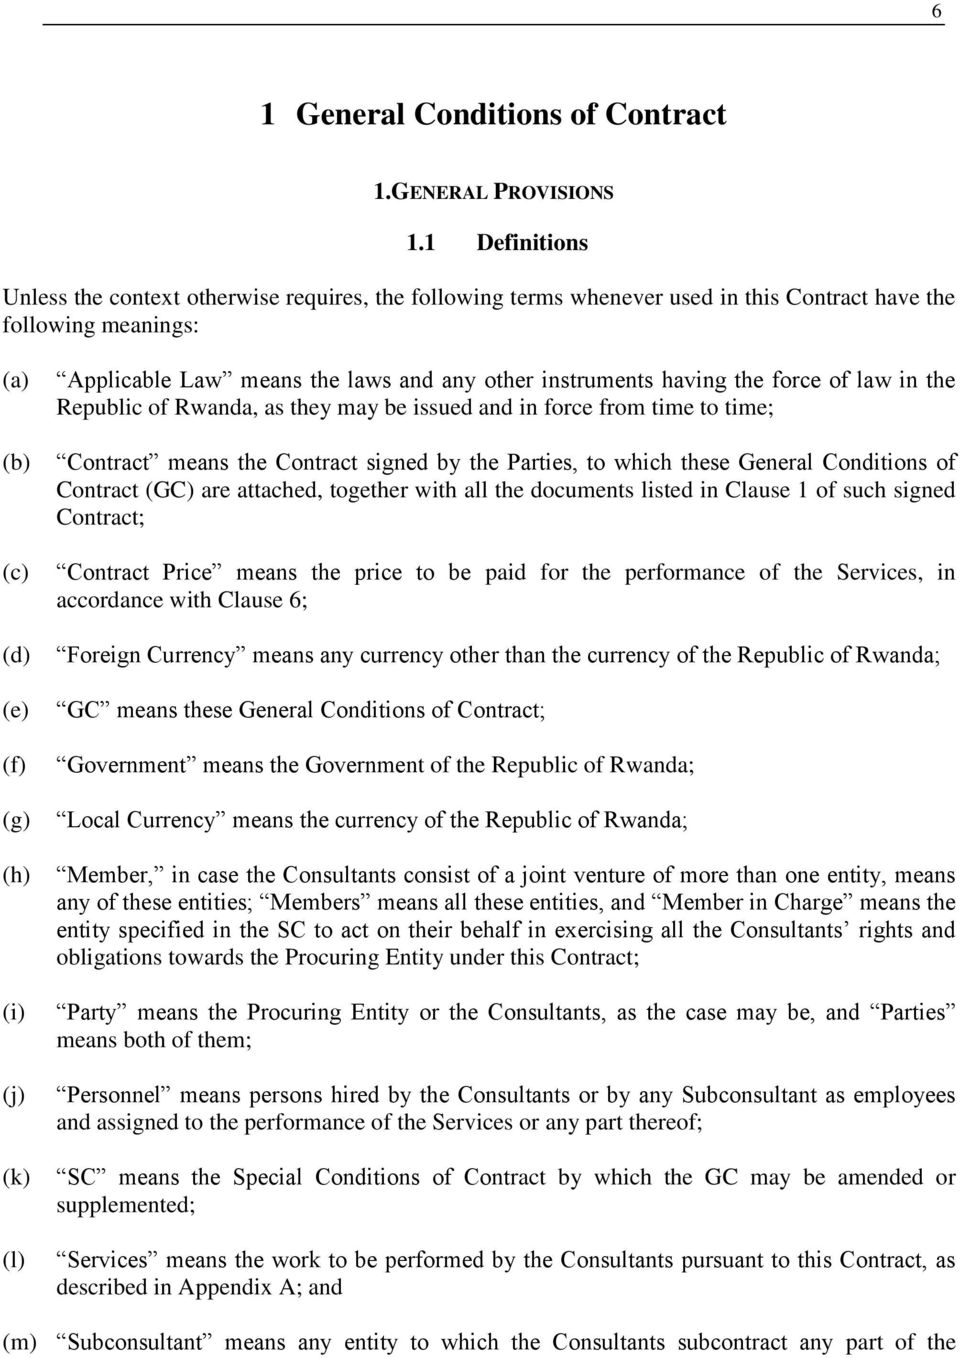 the laws and any other instruments having the force of law in the Republic of Rwanda, as they may be issued and in force from time to time; Contract means the Contract signed by the Parties, to which